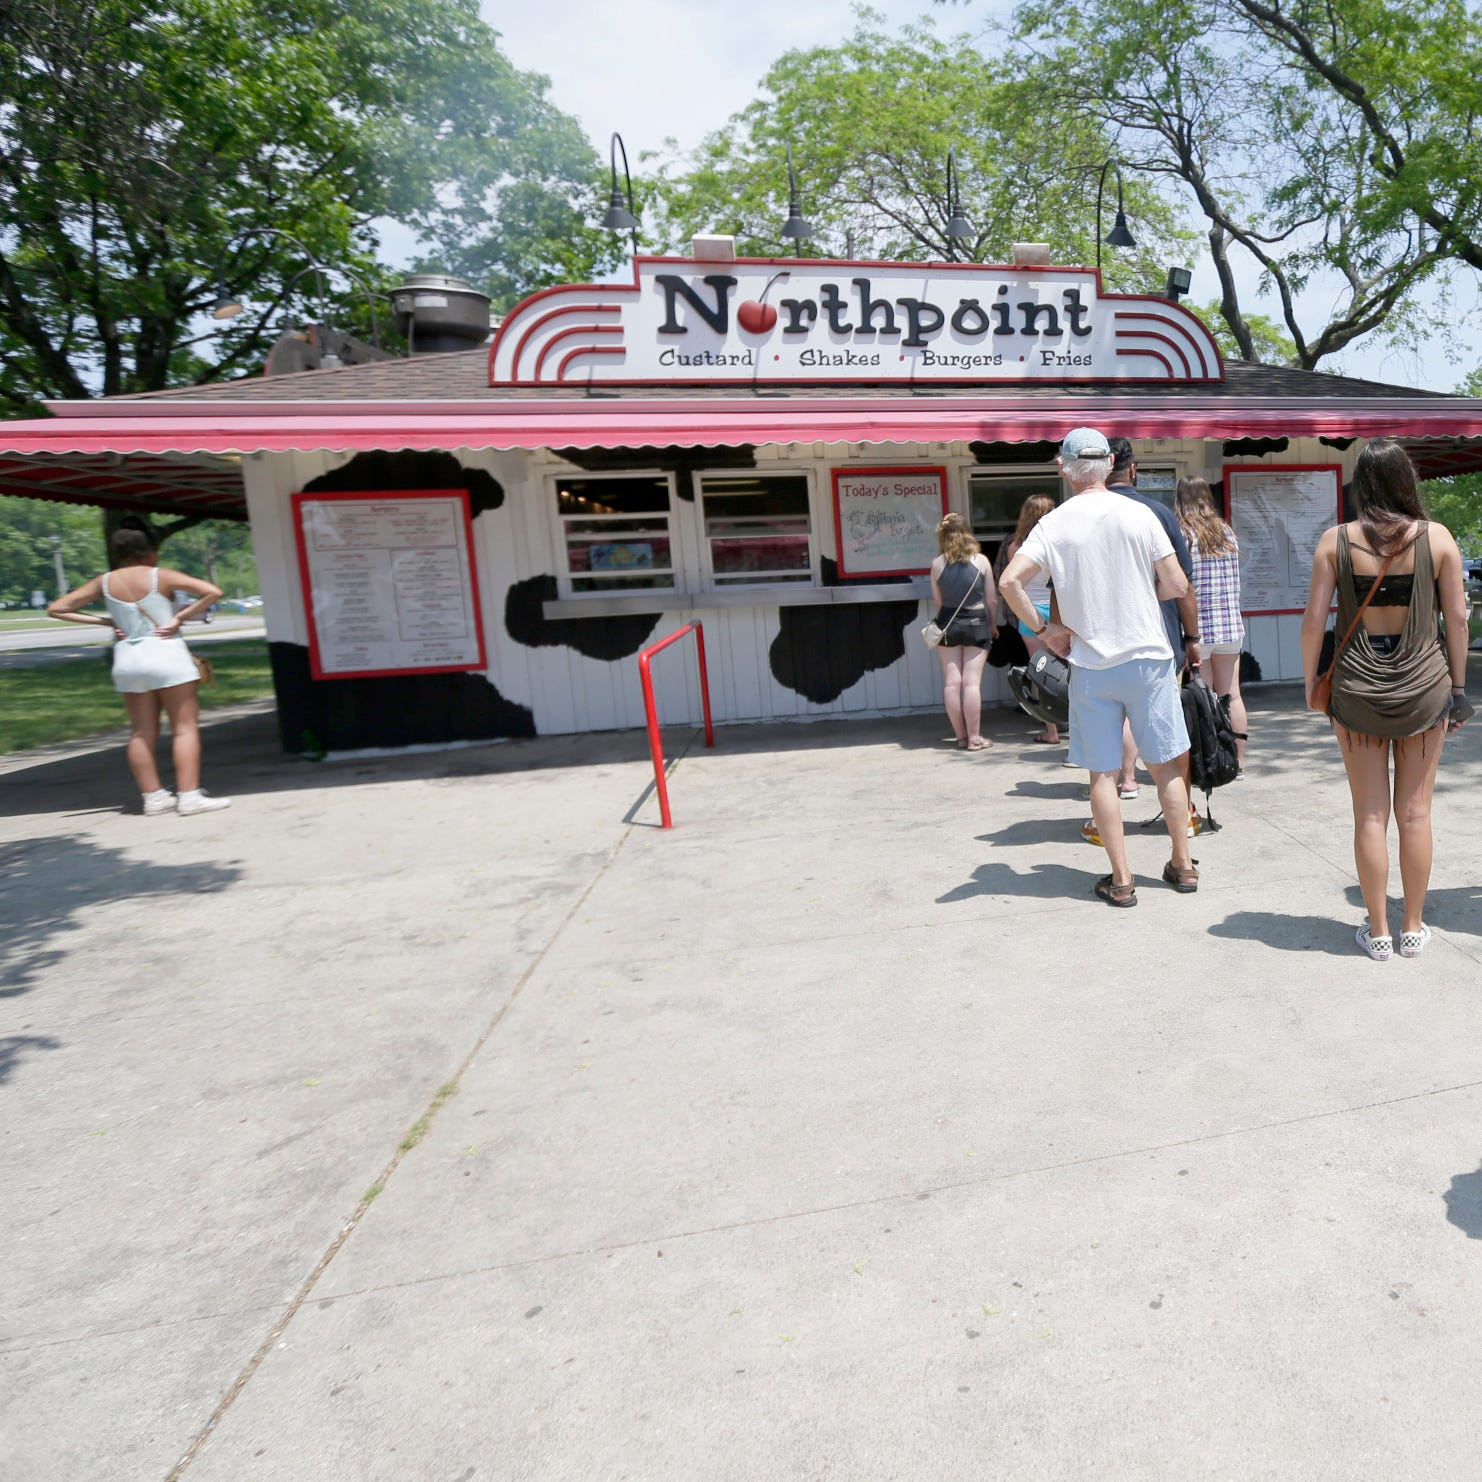 Bartolotta group drops Northpoint Custard for the McKinley Marina roundhouse